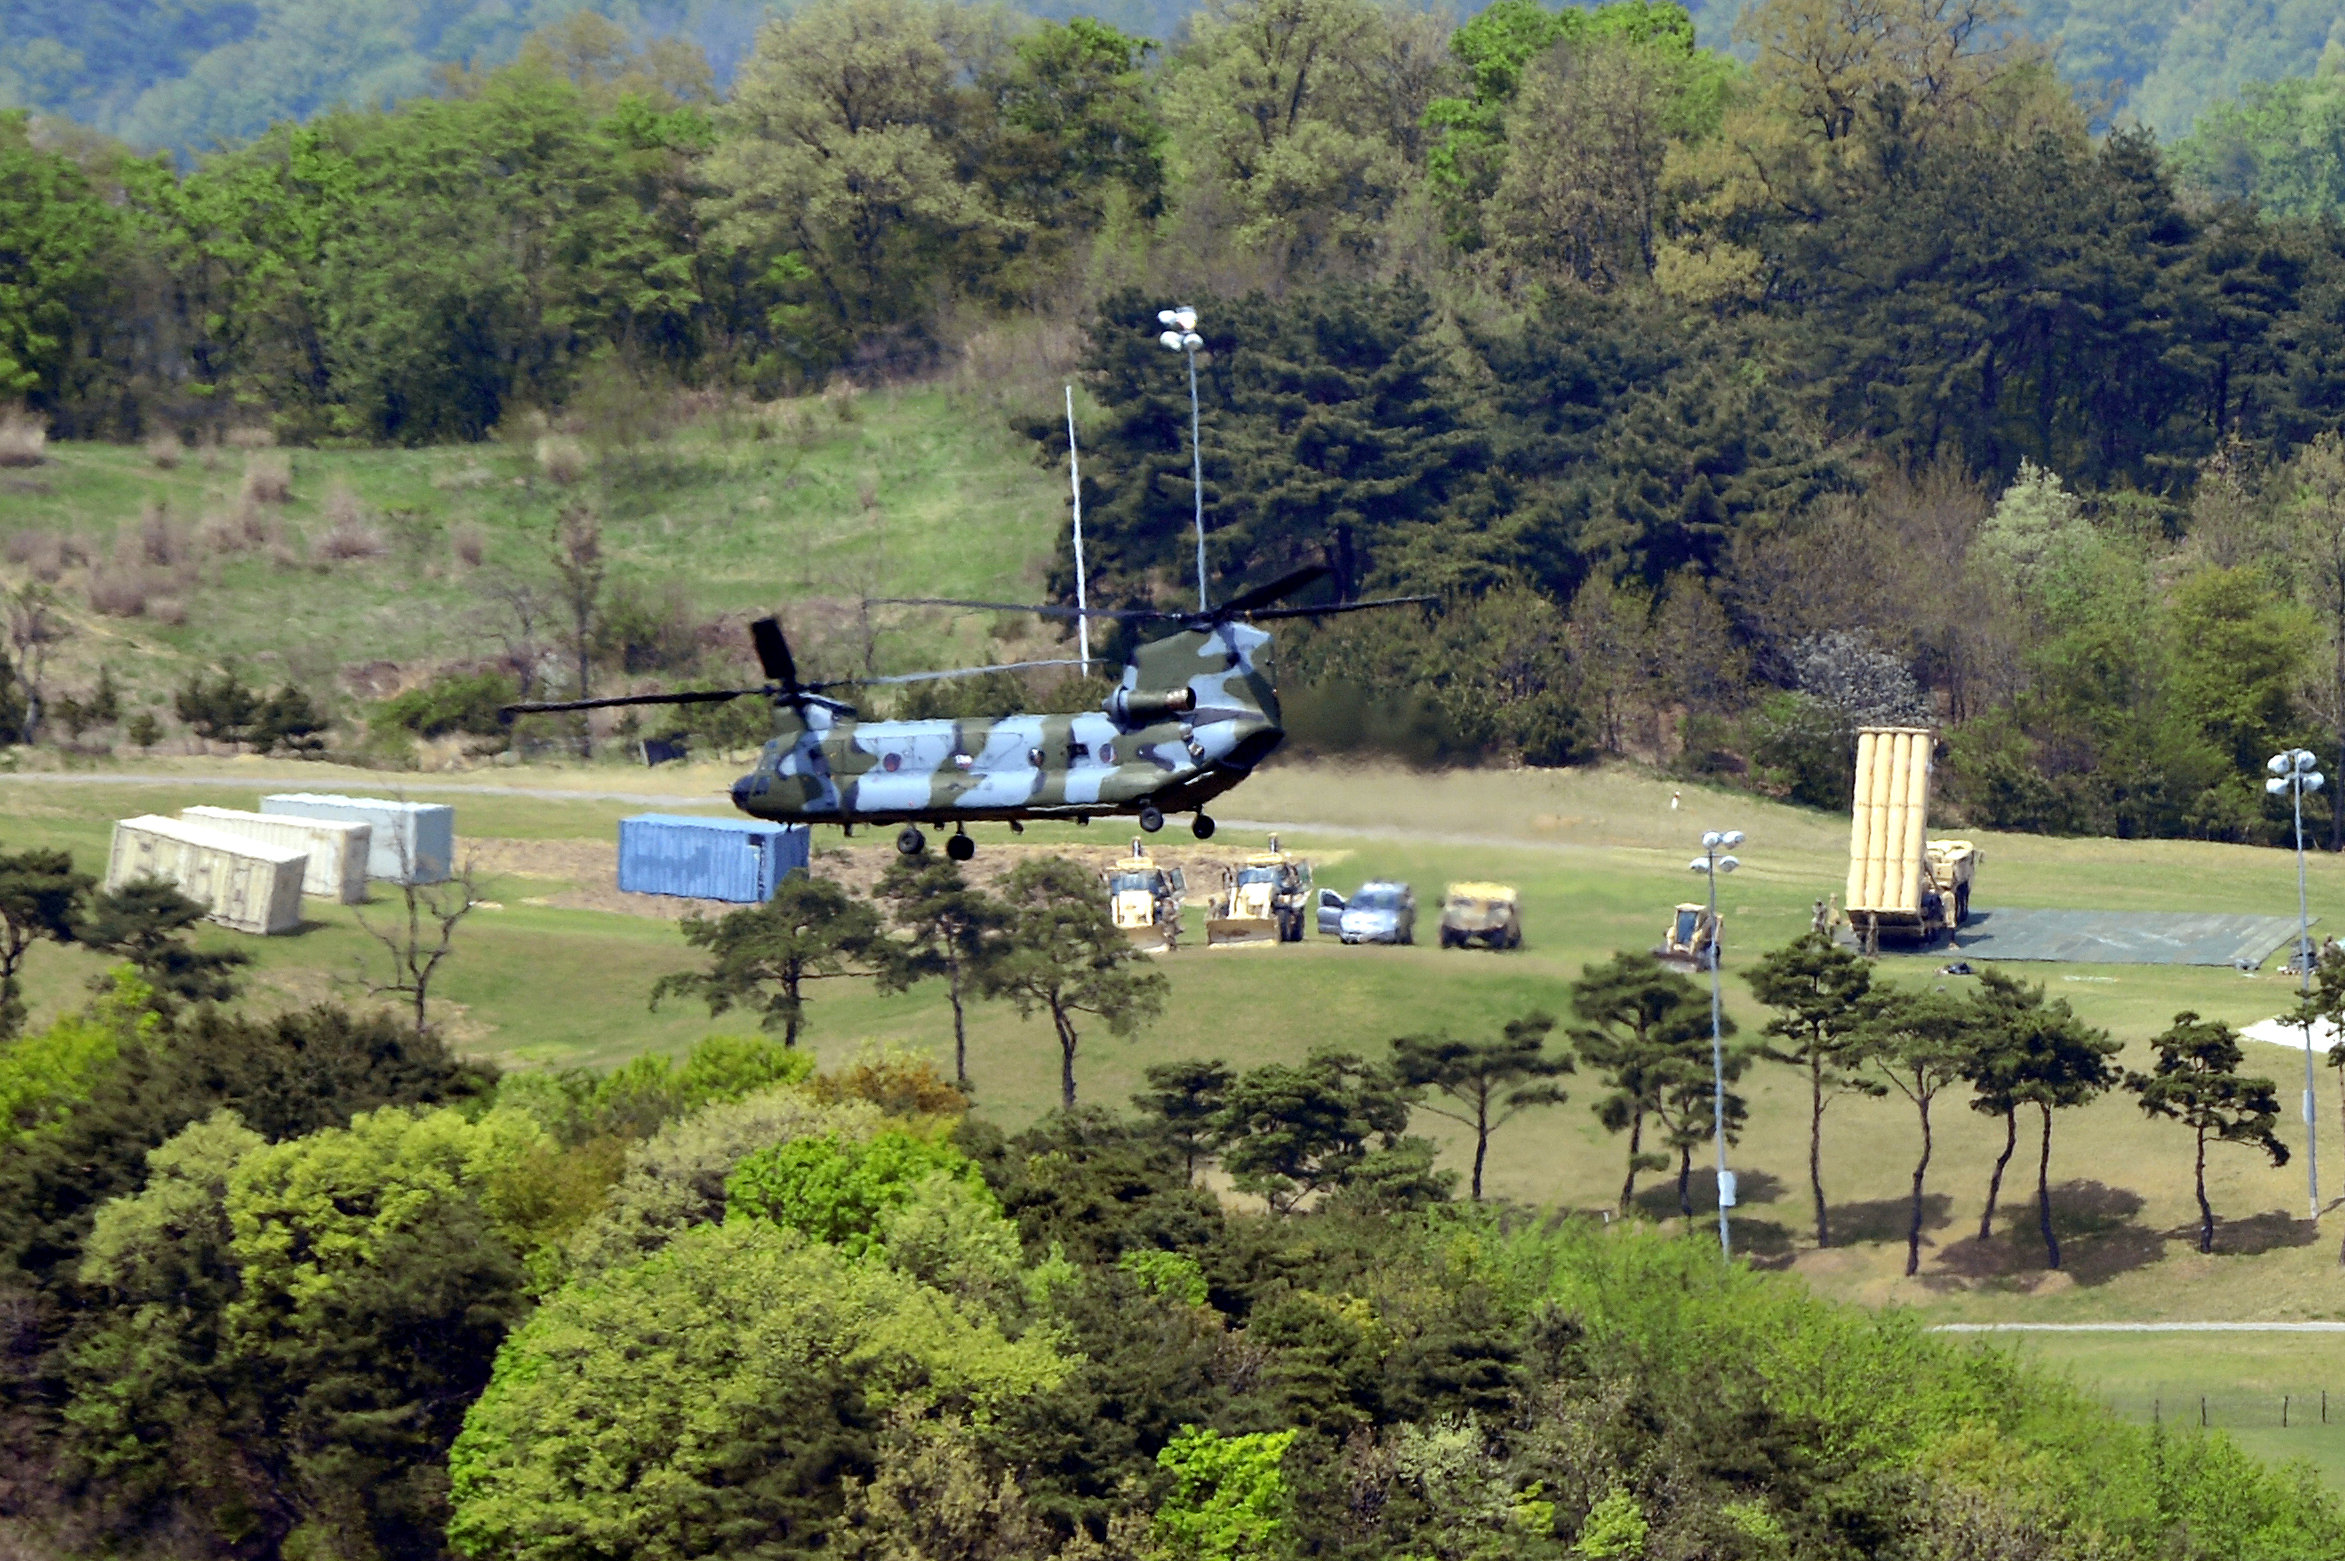 A Terminal High Altitude Area Defense (THAAD) interceptor (R) is seen in Seongju, South Korea on April 26, 2017. (Lee Jong-hyeon/News1 via REUTERS)